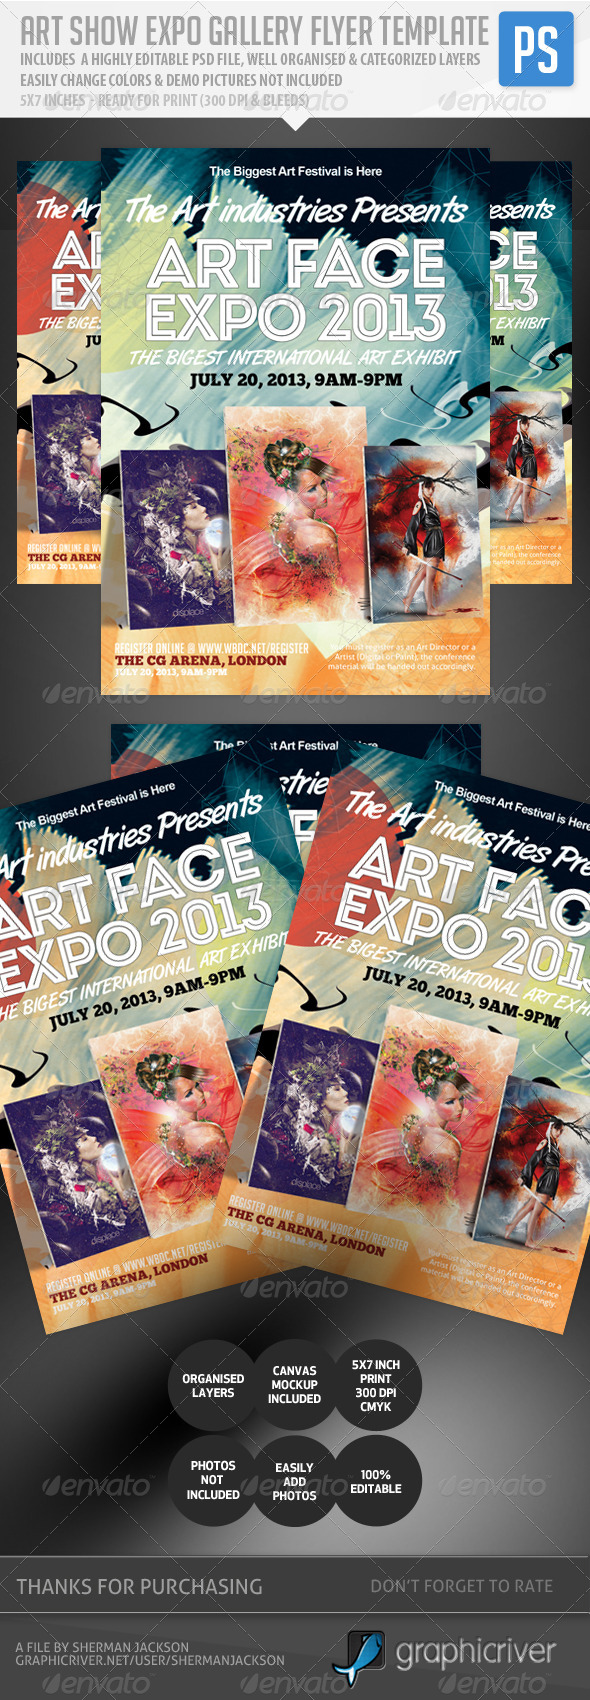 Art Show Expo Flyer Template V.2 - Events Flyers